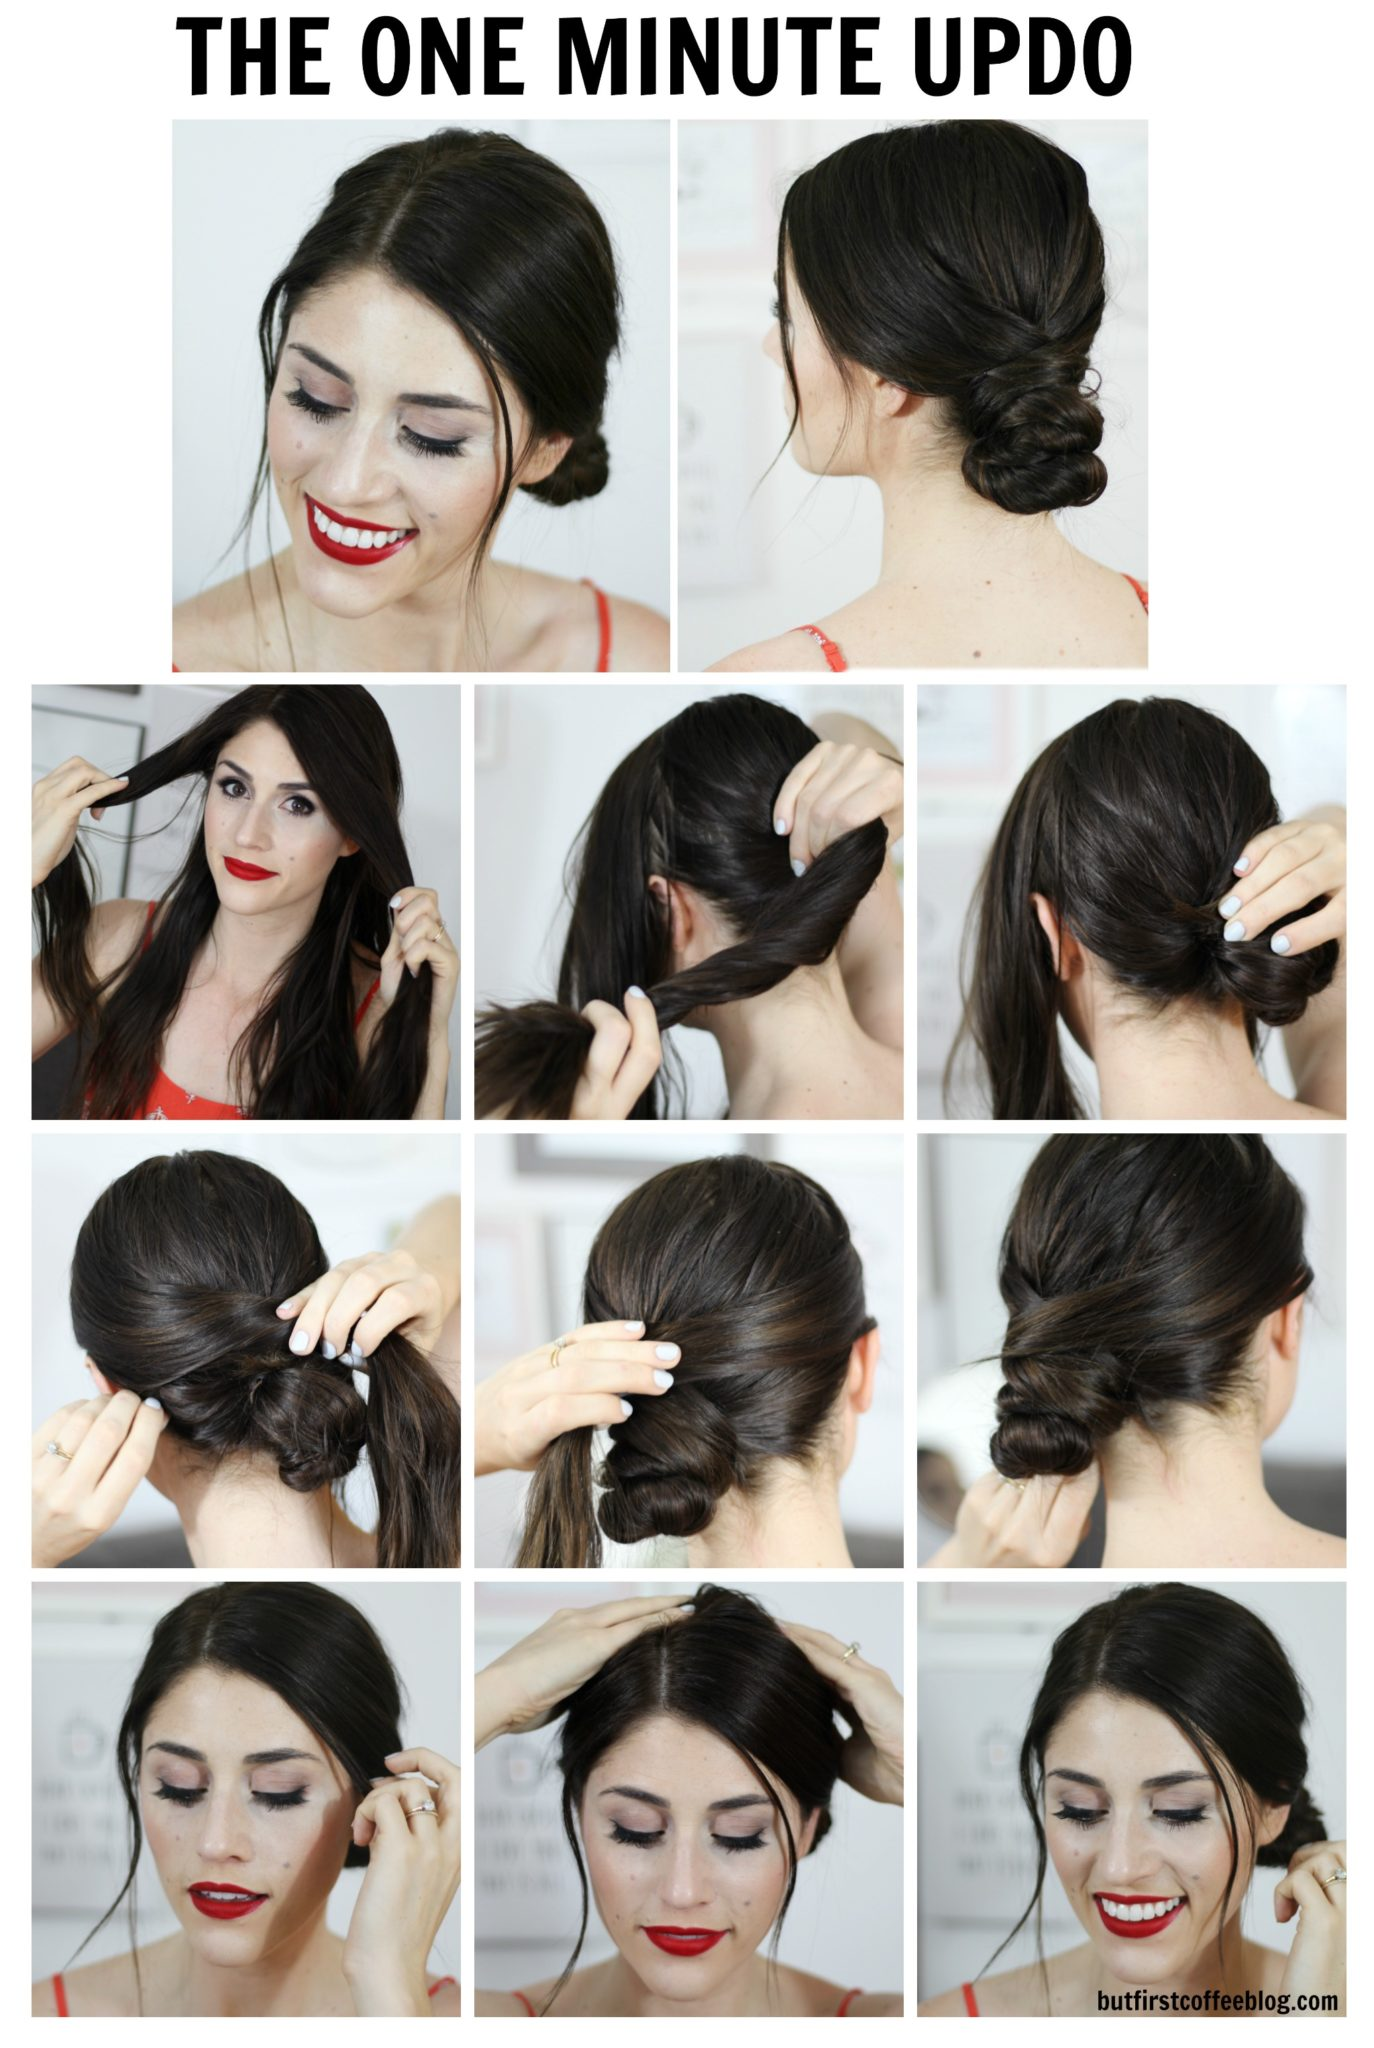 the-one-minute-updo-tutorial